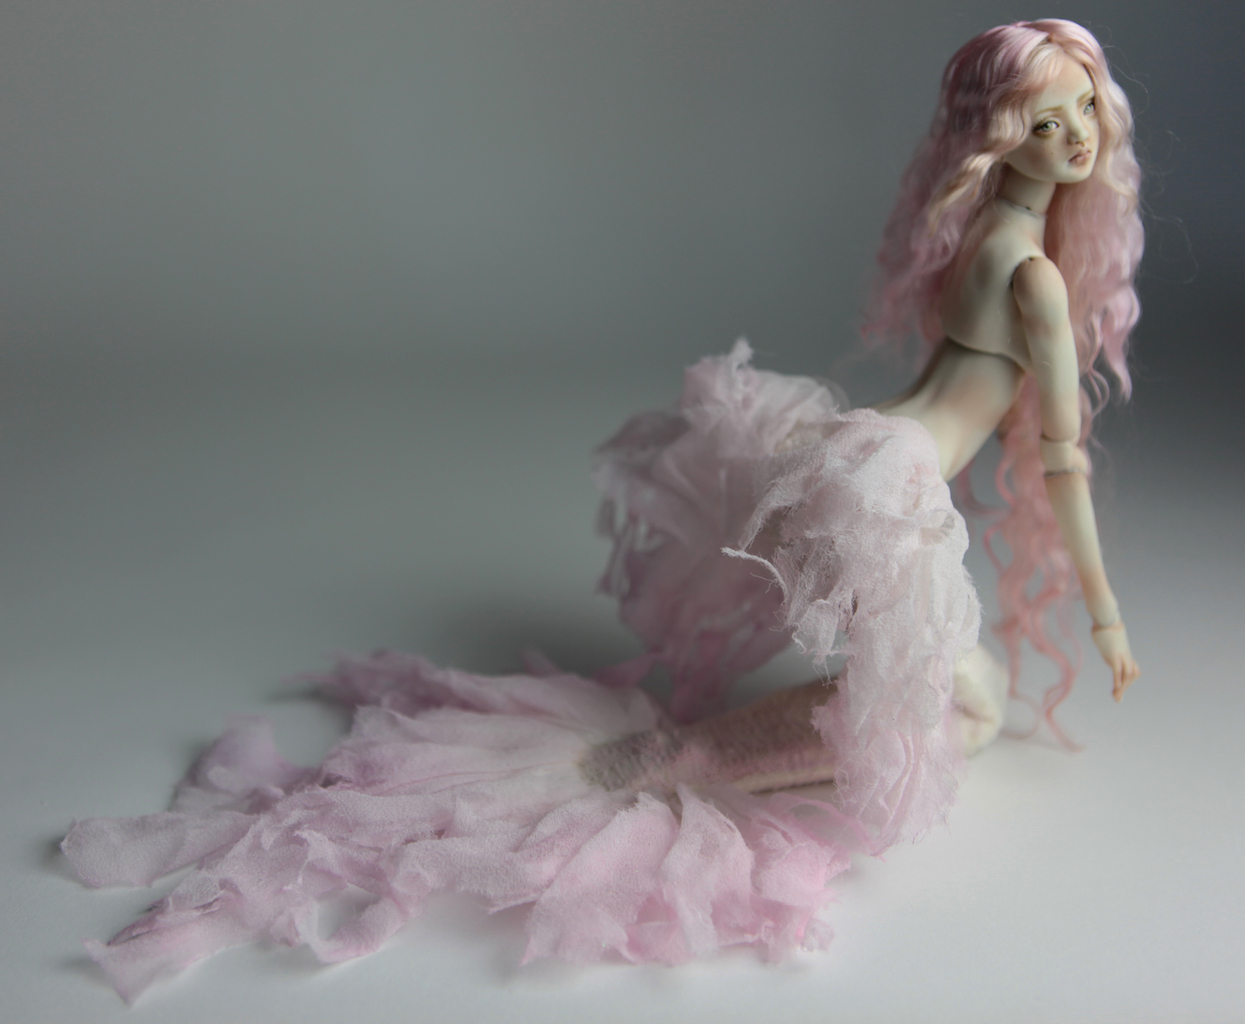 Cotton Candy Mermaid BJD Doll Ball Jointed Forgotten Hearts FHDolls Rose Gold Wig 2 6 15 Cotton Candy Willow Nude